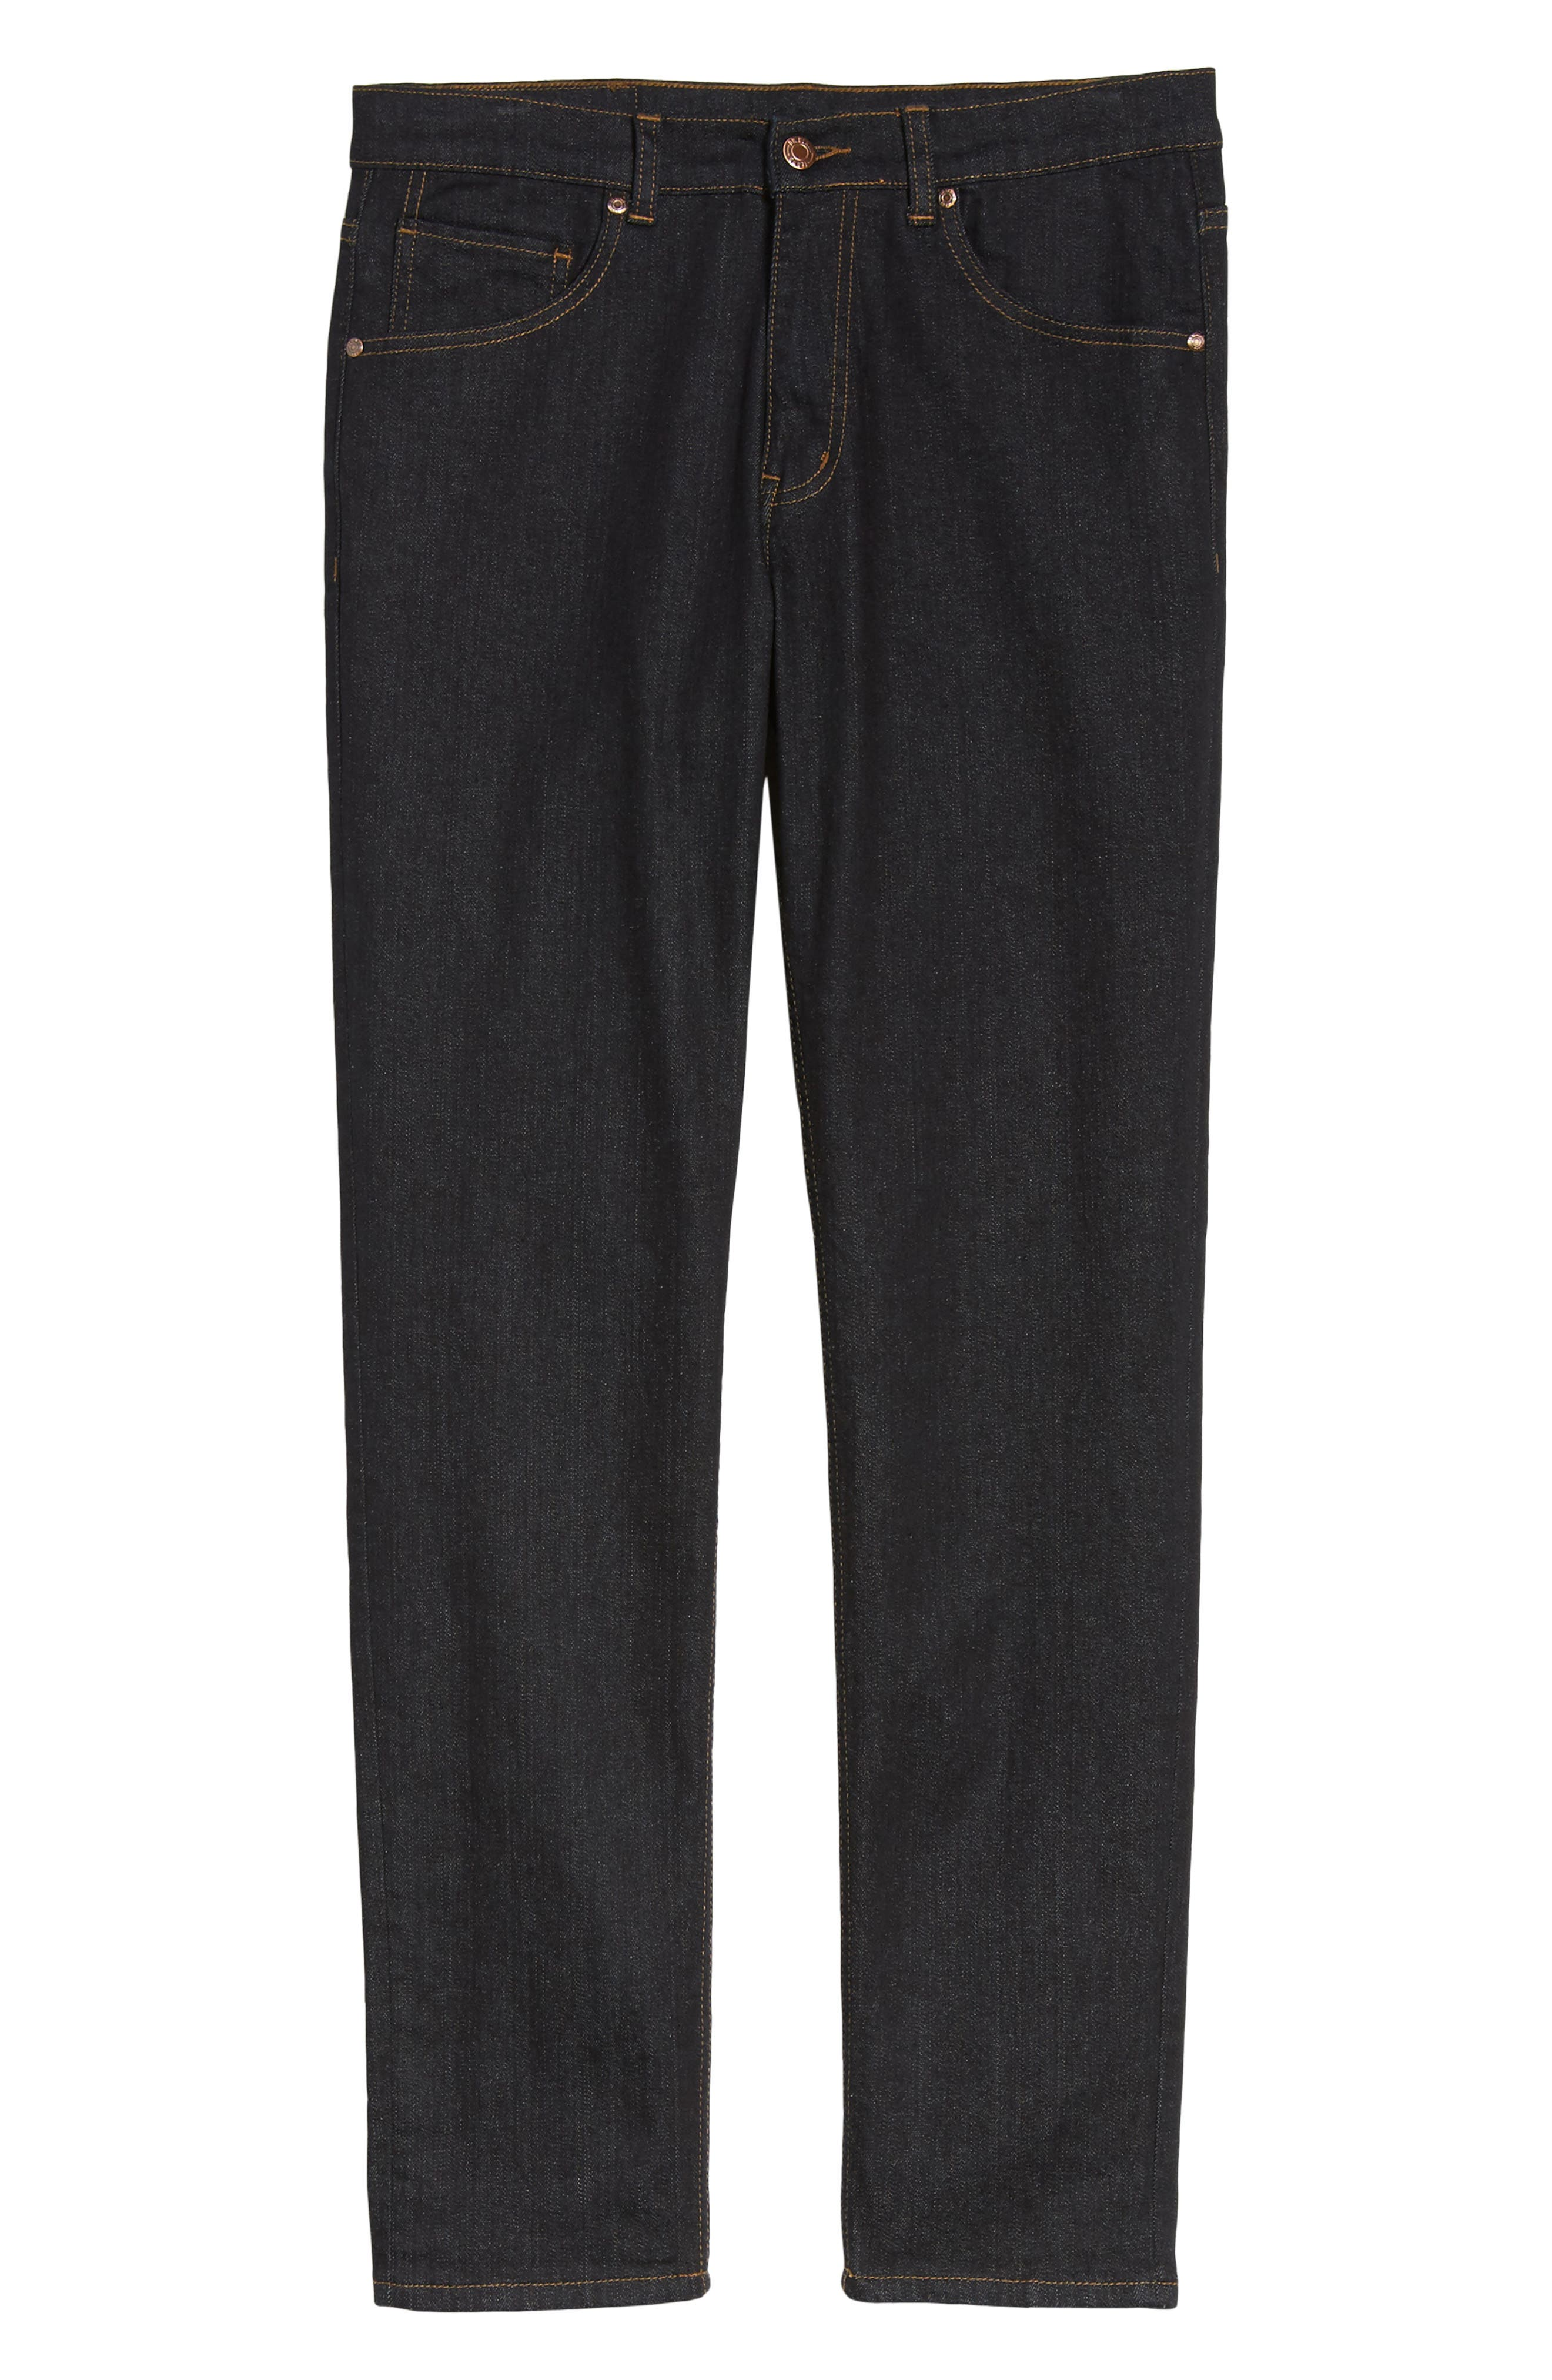 James Relaxed Fit Jeans,                             Alternate thumbnail 6, color,                             400